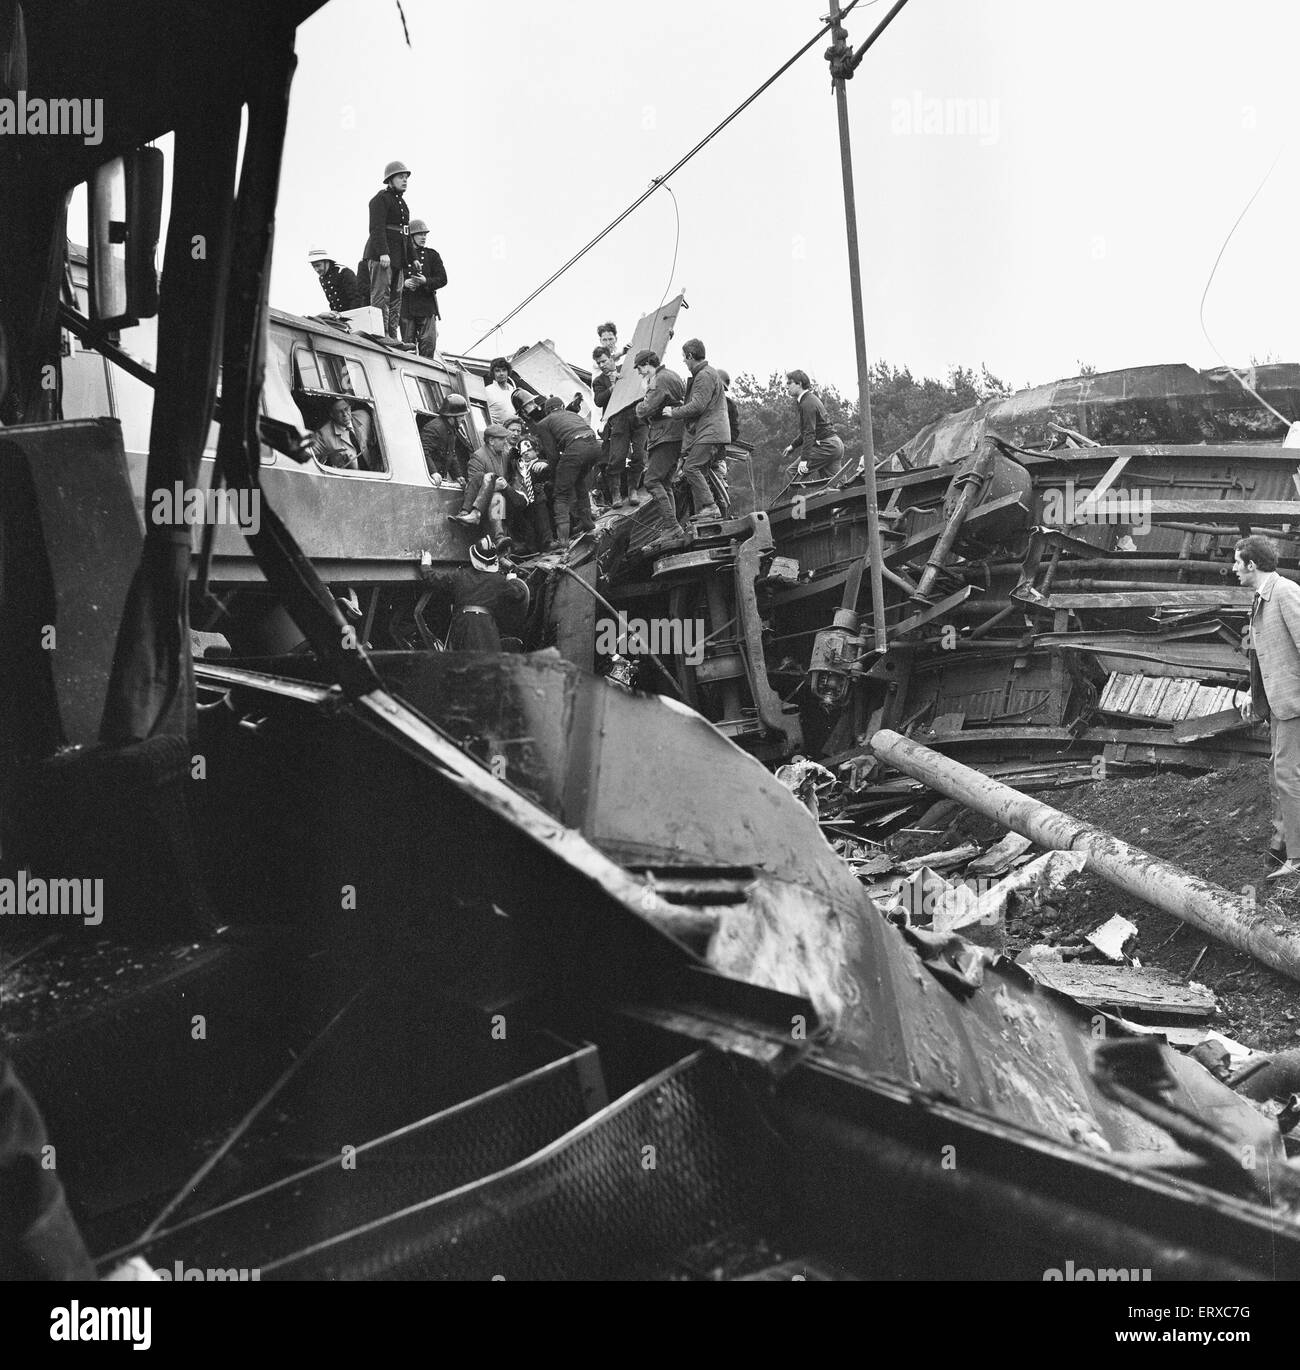 The Hixon rail crash occurred on 6 January 1968 when a low-loader transporter carrying a 150 ton electrical transformer - Stock Image